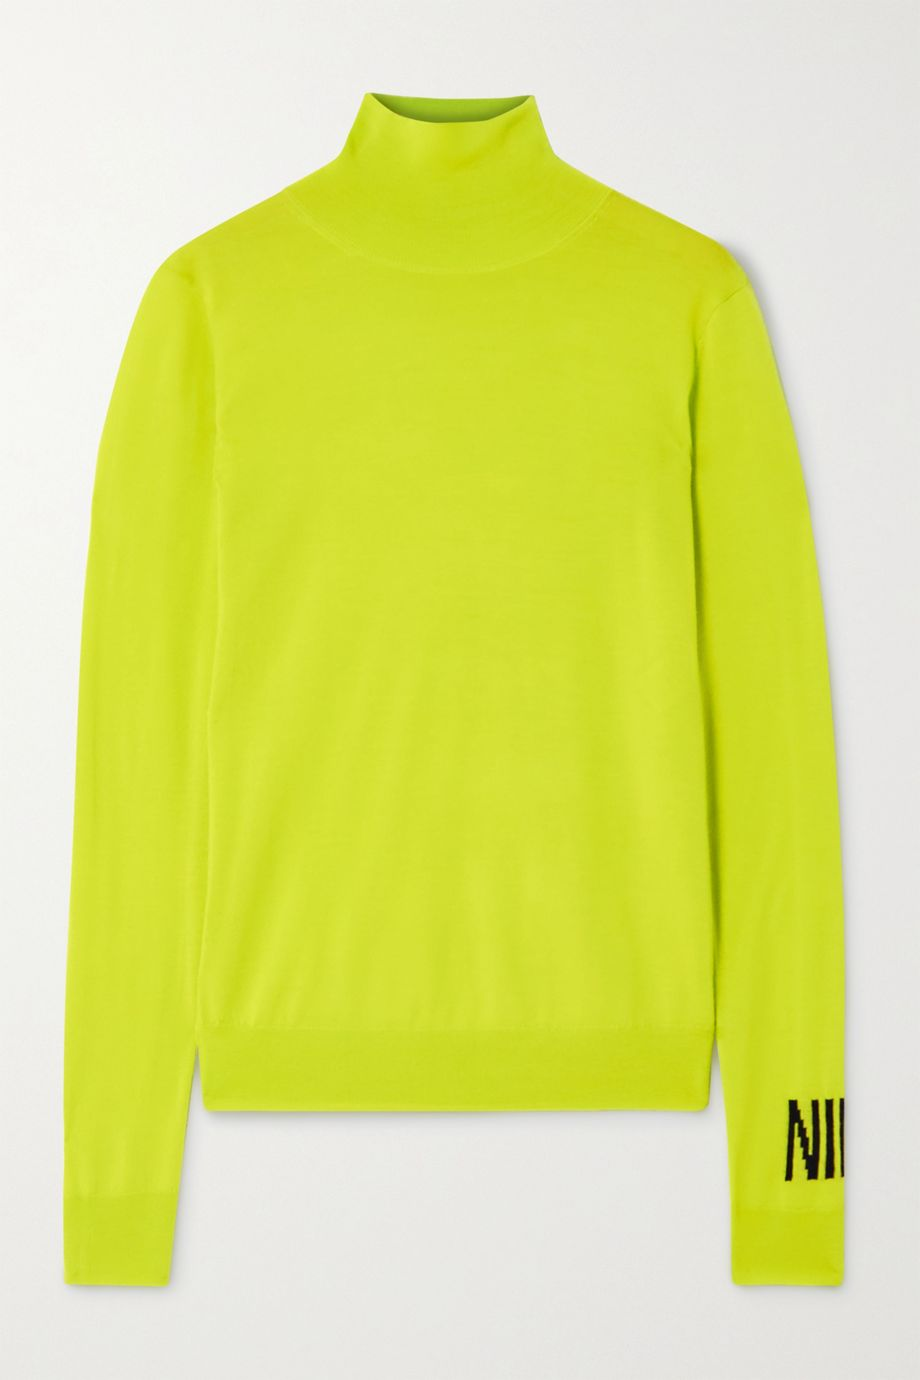 Nina Ricci Intarsia wool turtleneck sweater